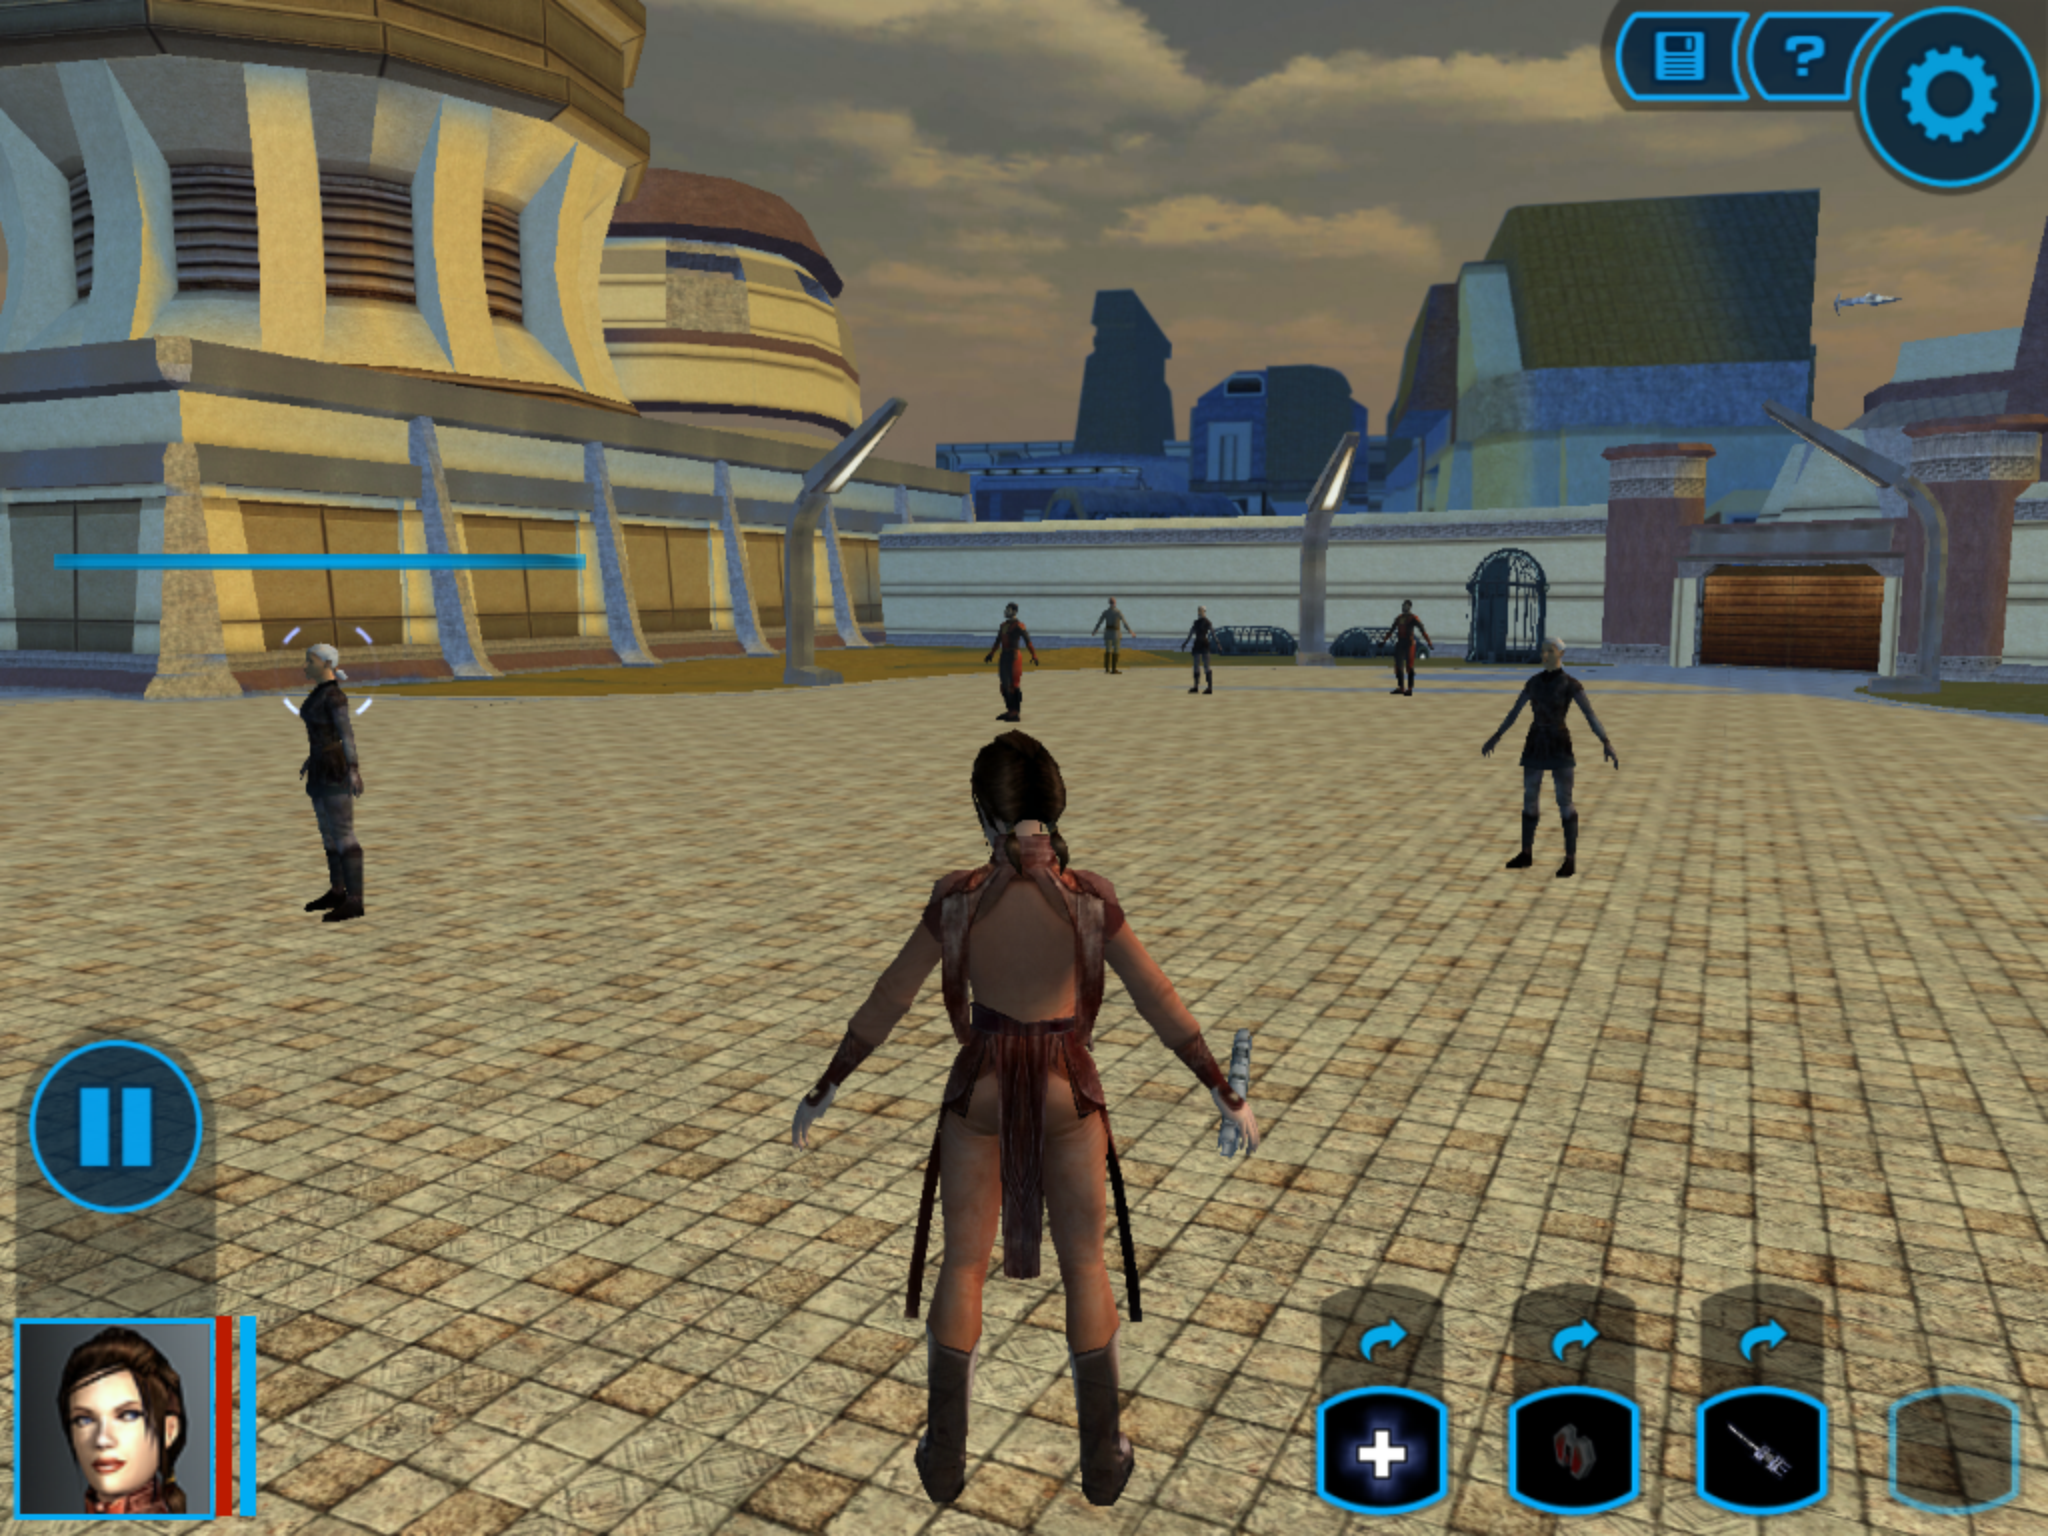 image 1 - KOTOR II Mobile (K2M) mod for Star Wars: Knights of the